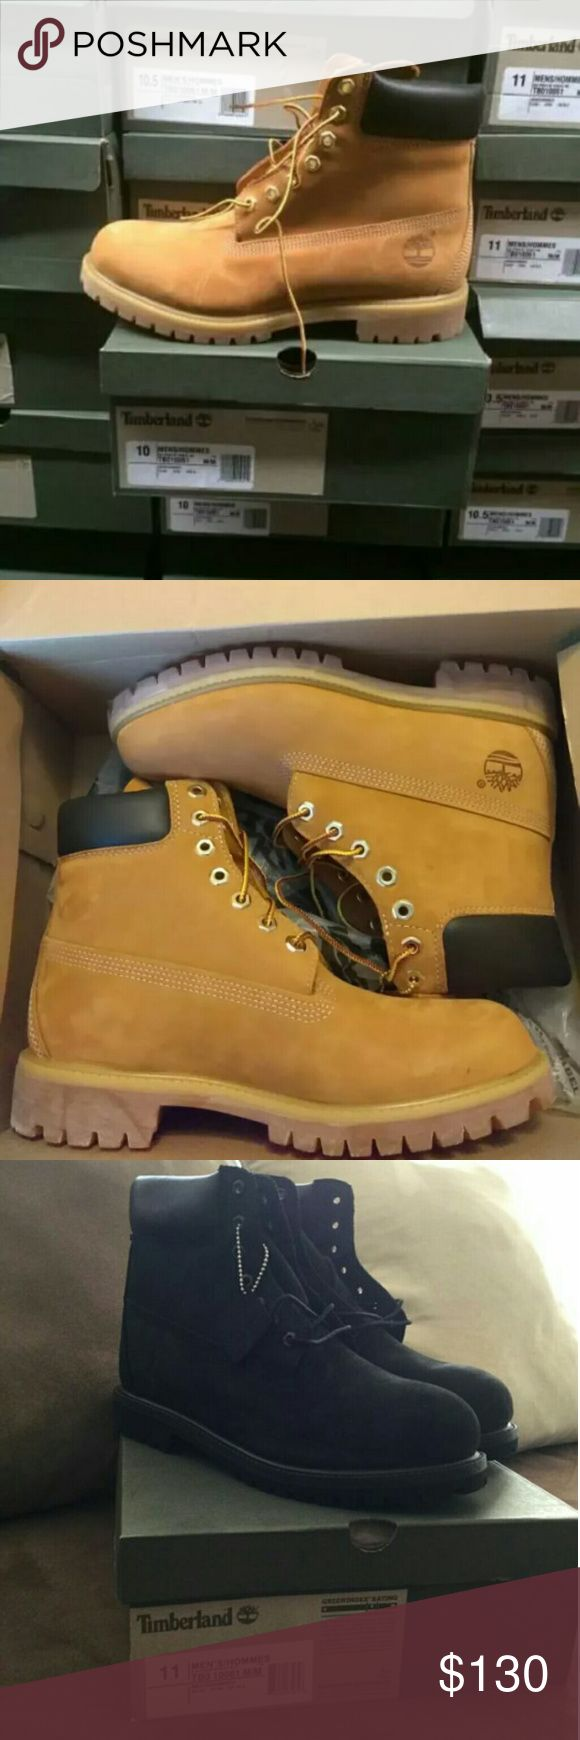 Premium 6' Timberland boots Selling the original 6' Premium  Timberland boots  Brand new in Og box  Retail $189 after tax $205 and that's ALL YEAR ROUND  ALL SIZES  Check your local shoe store to see the price your self  Men 7 -12 $140 Youth 5-6.5 $100 Serious Buyers ONLY MSG ME! Timberland Shoes Winter & Rain Boots